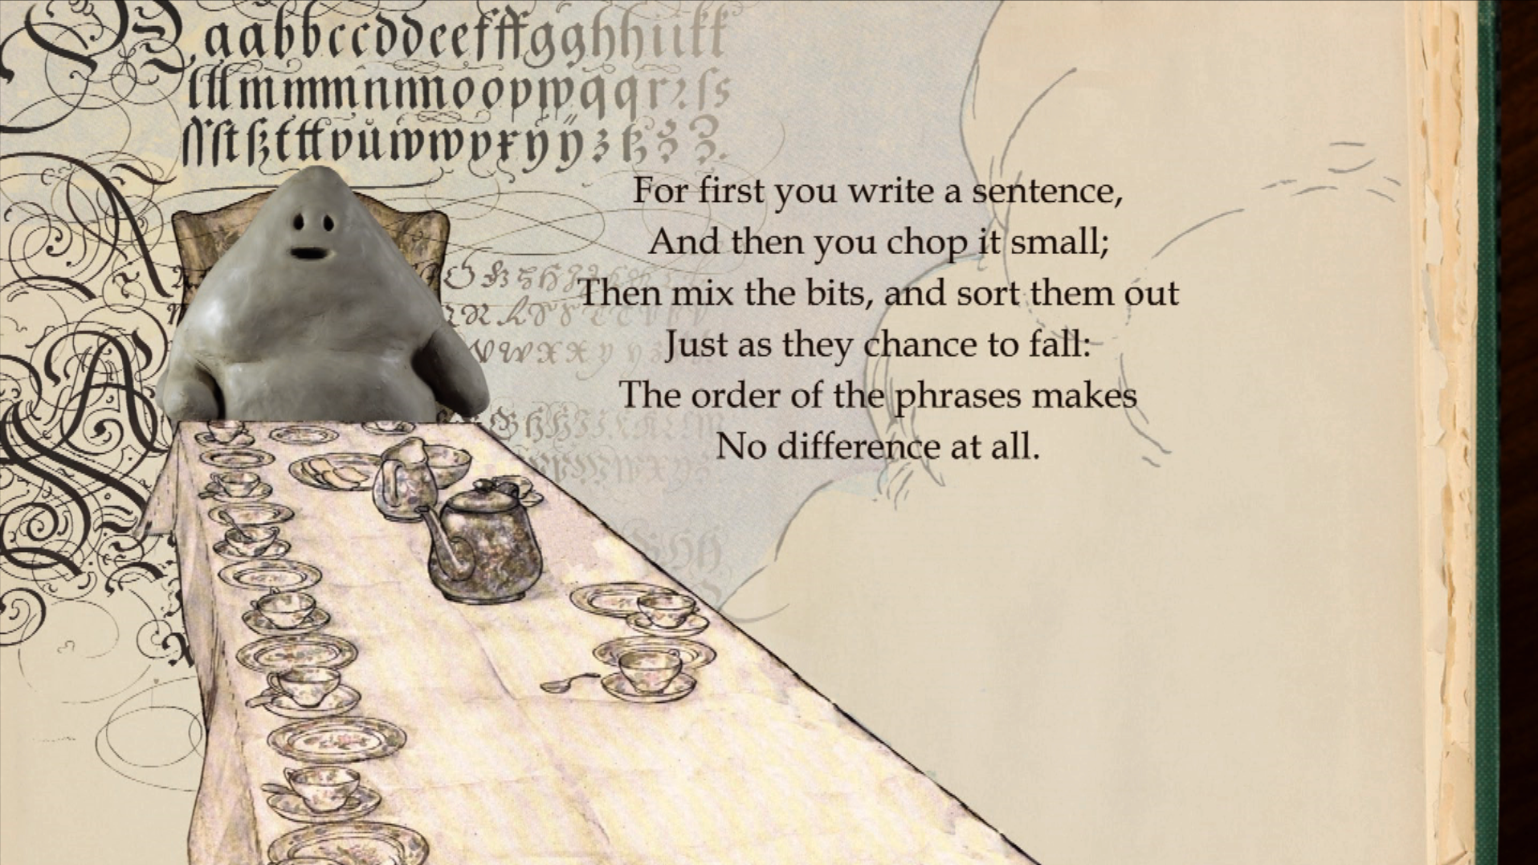 The Golem - and one of the first texts about copying - courtesy of Lewis Carroll